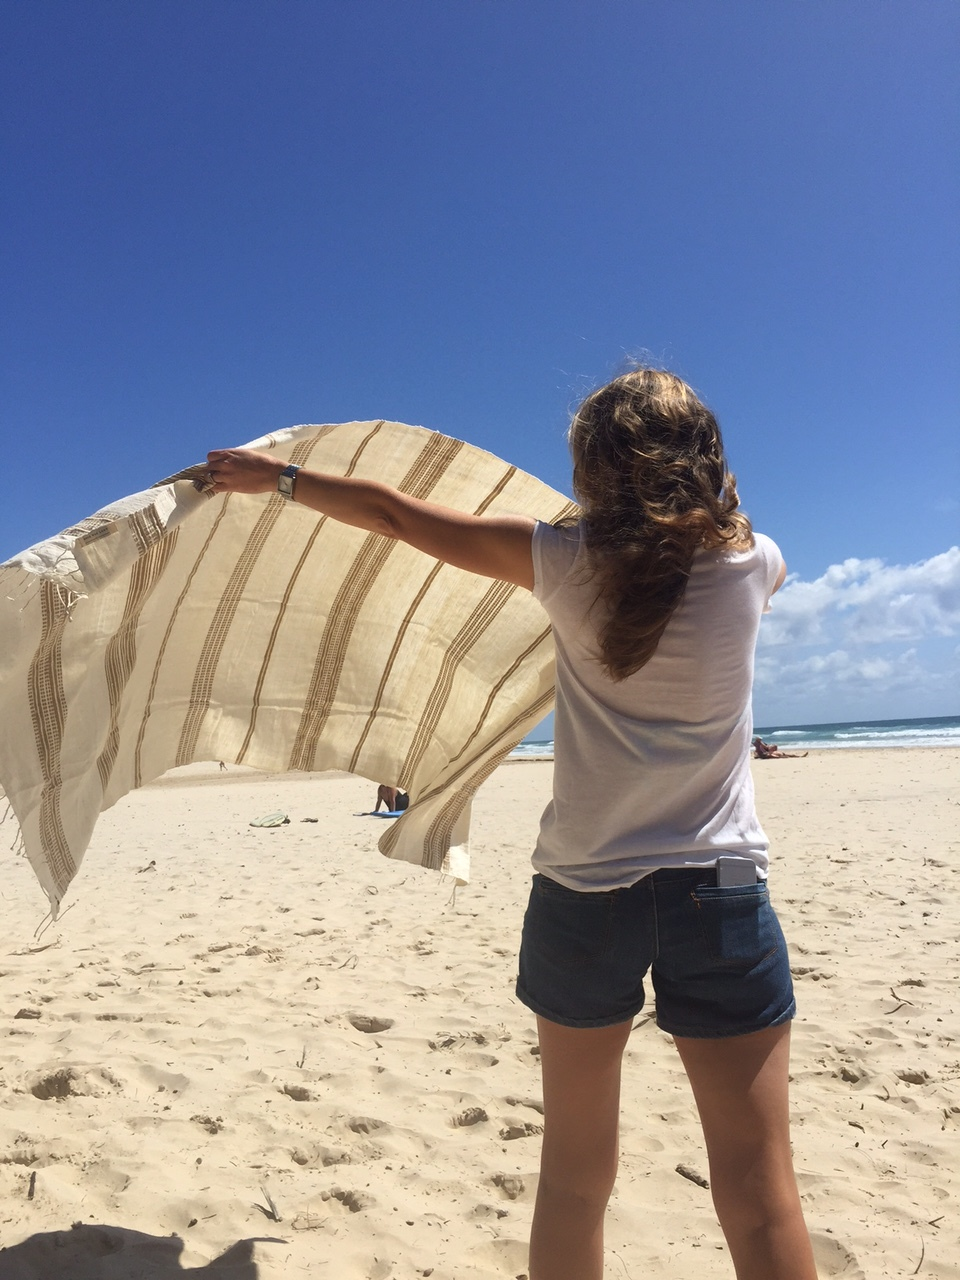 Living the dream at Coolum Beach with my trusty  cotton towel !